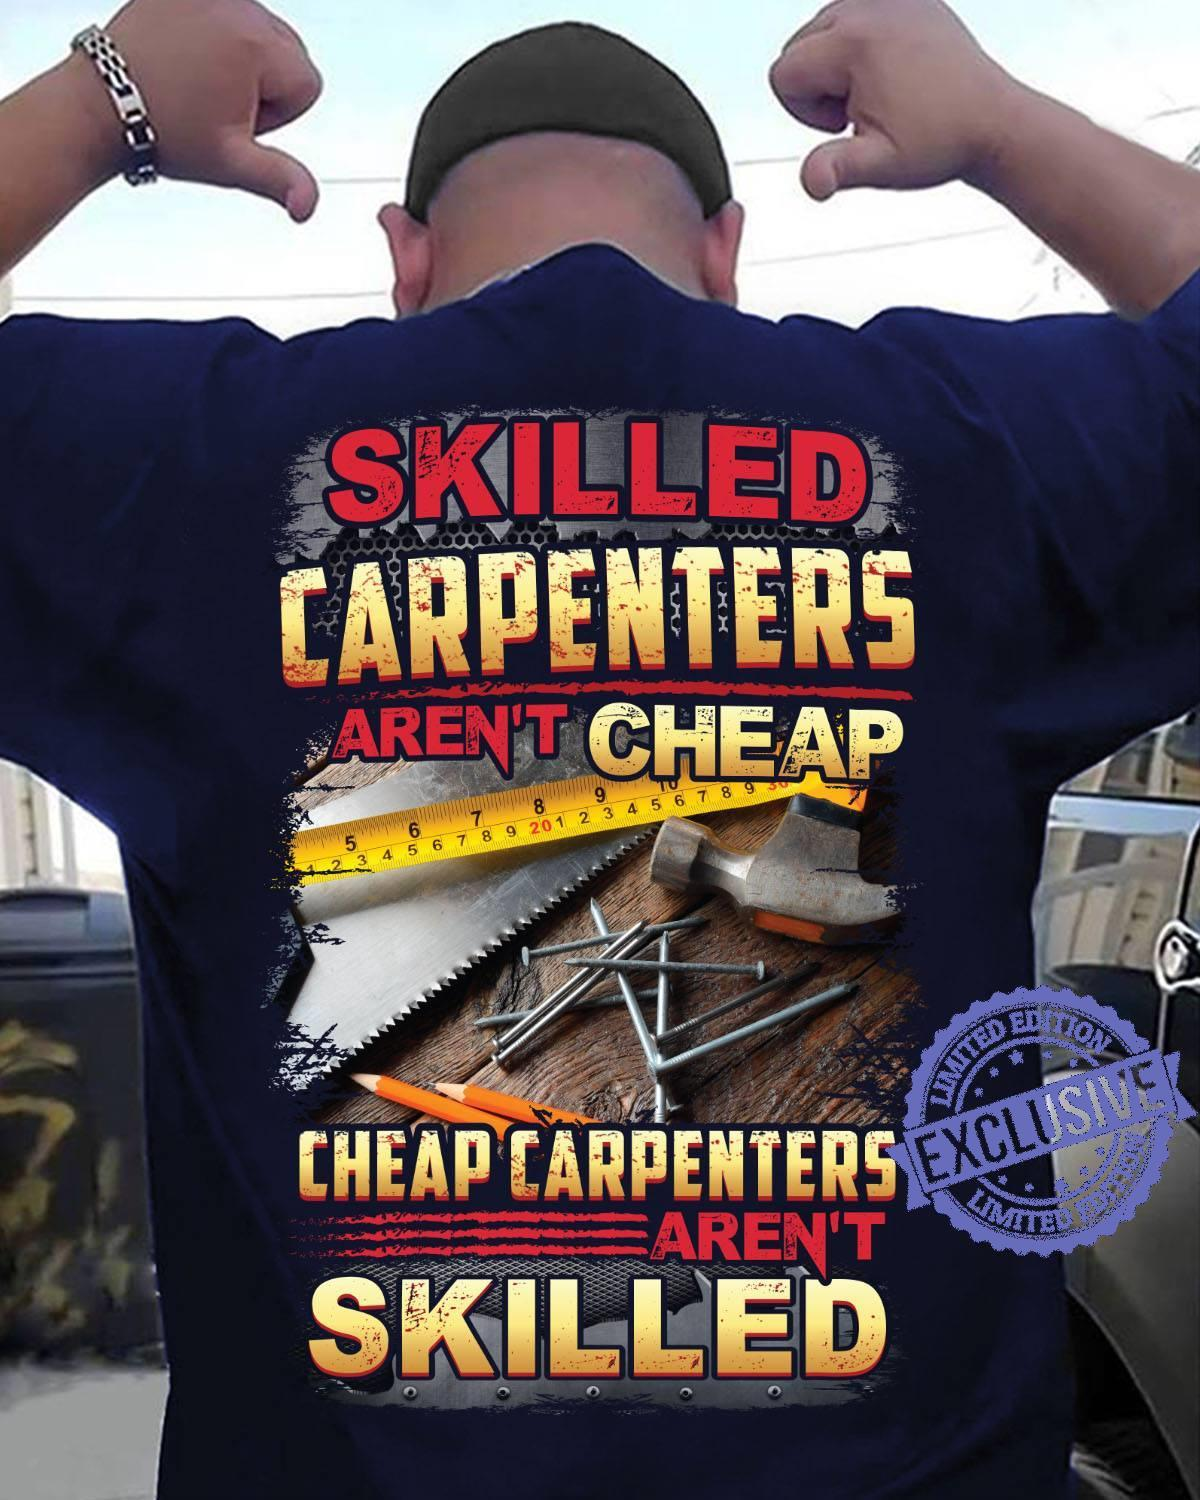 Skilled carpenters aren't cheap cheap carpenters aren't skilled shirt